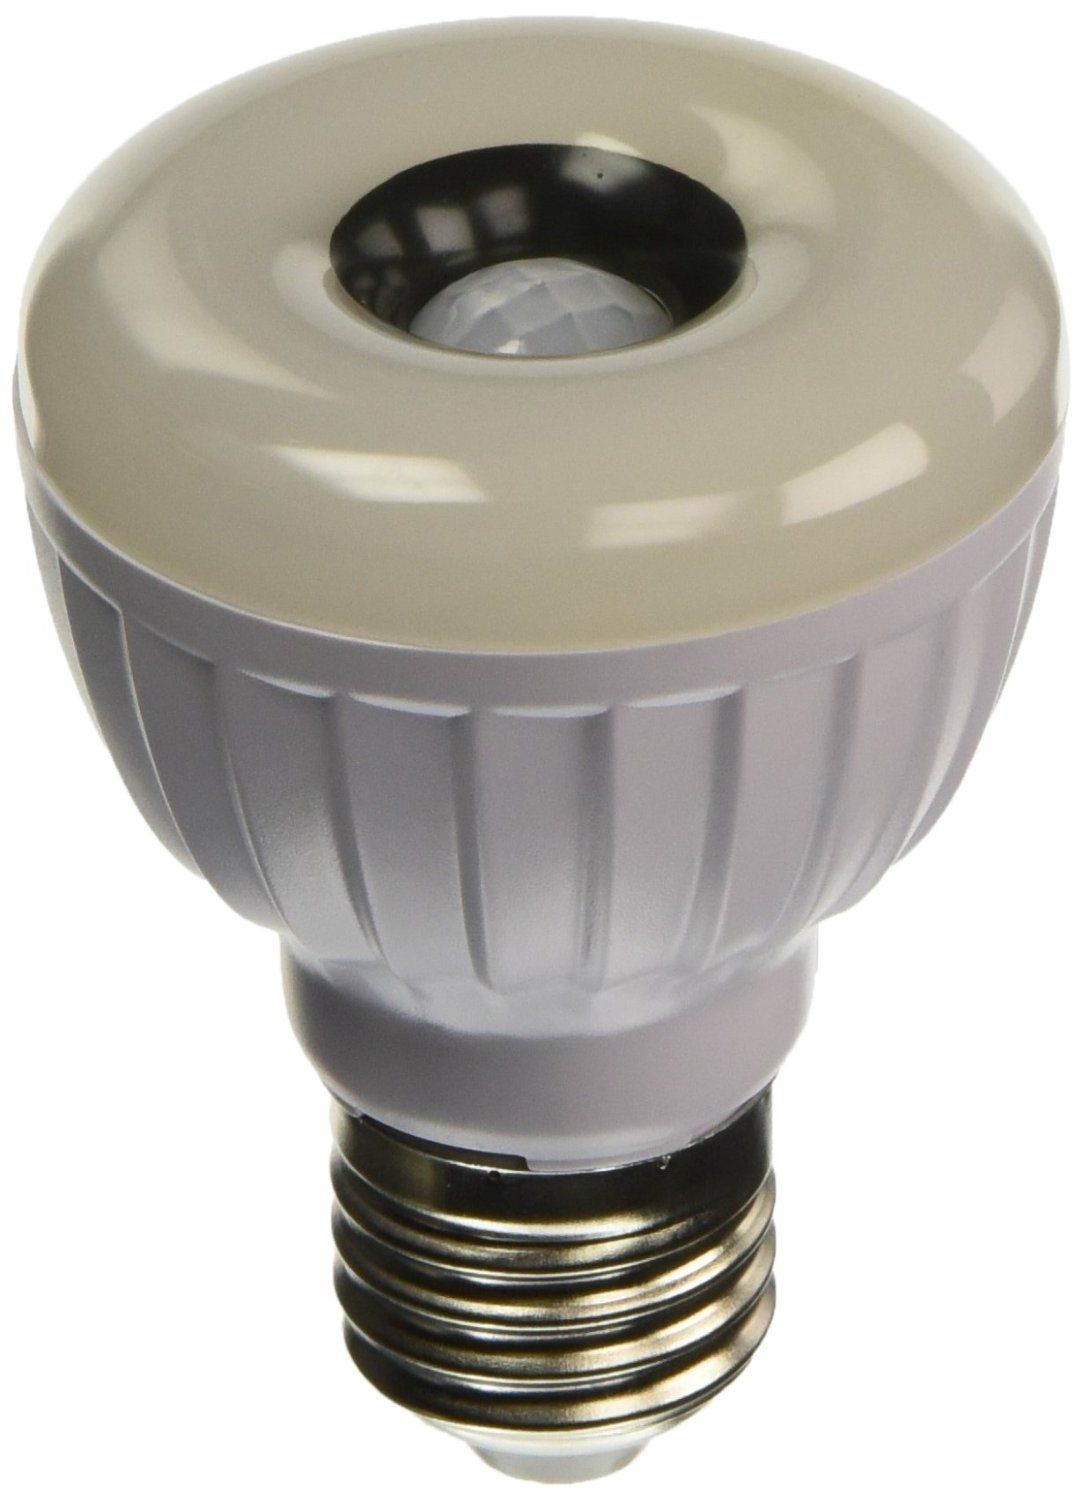 Top 10 Best Motion Sensor Light Bulb In Reviews